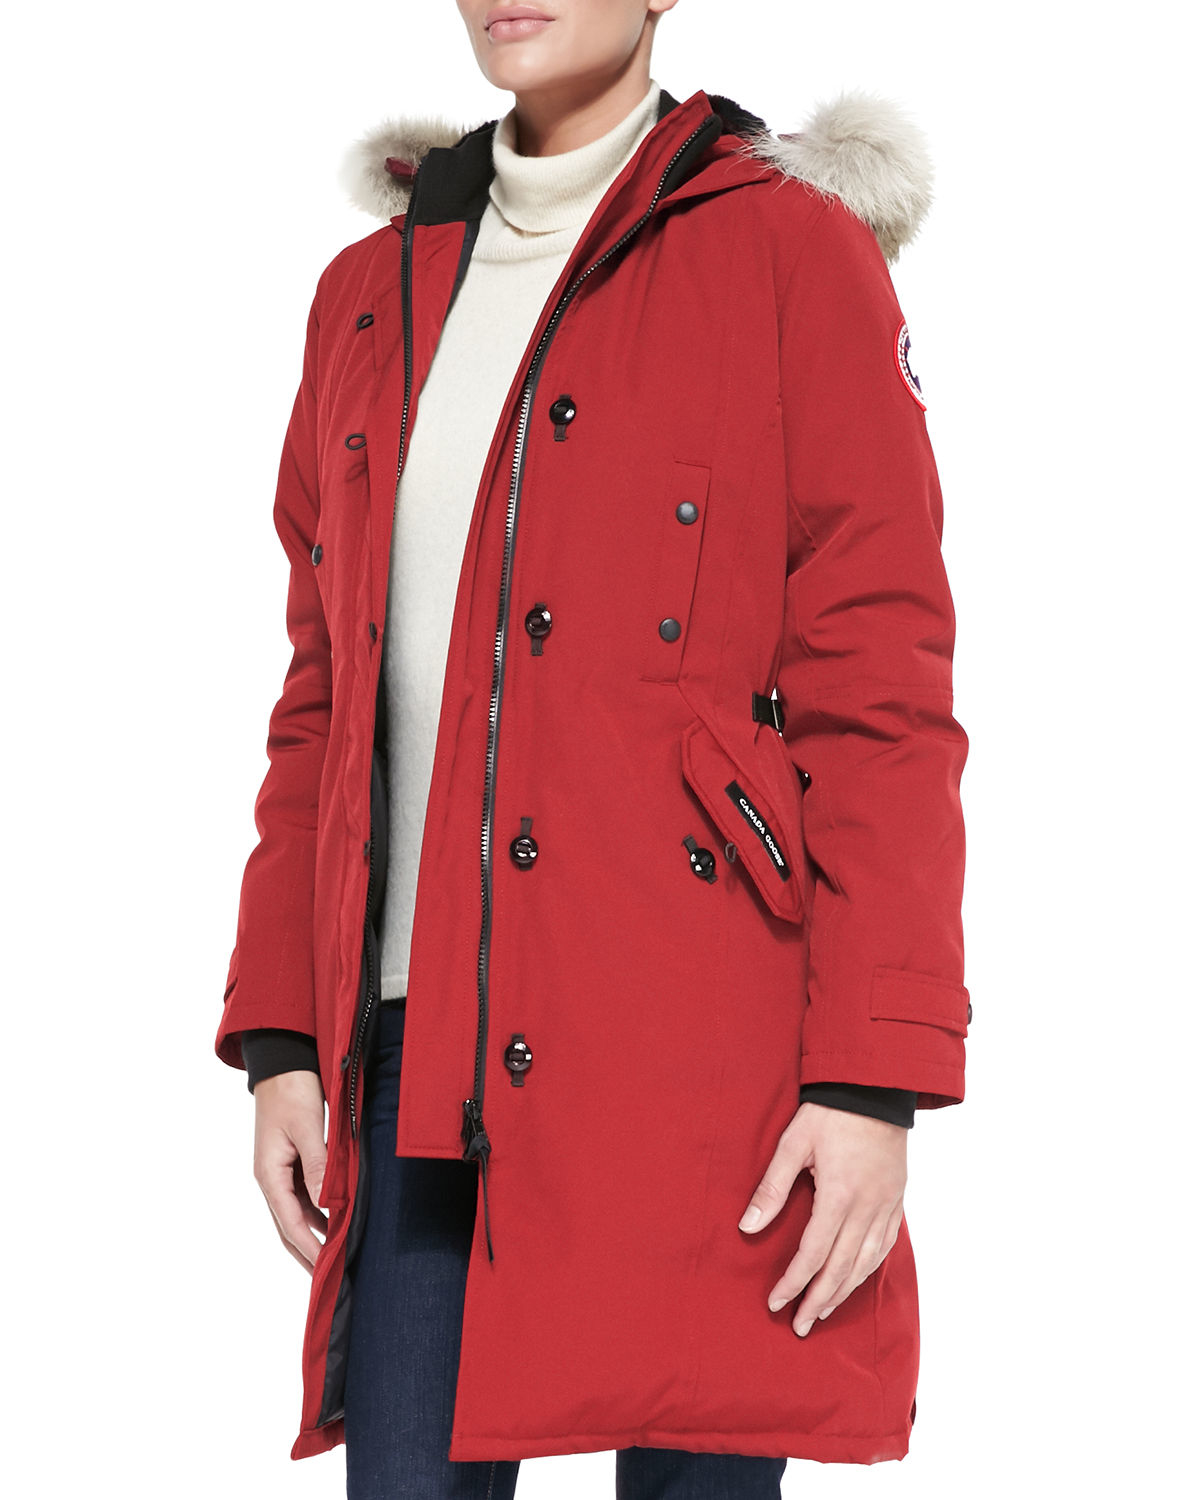 Puffer Coats, Puffer Jackets, Wool Coats, Down Coat, Down Parka, Nice Jackets, Jacket Style, Ladies Gloves, Wet Look, Fume Hood, Latex Dress, Sparkle, Dressing Up, Clothes, Down Jackets, Wool Jackets Find this Pin and more on coats by mike smith.